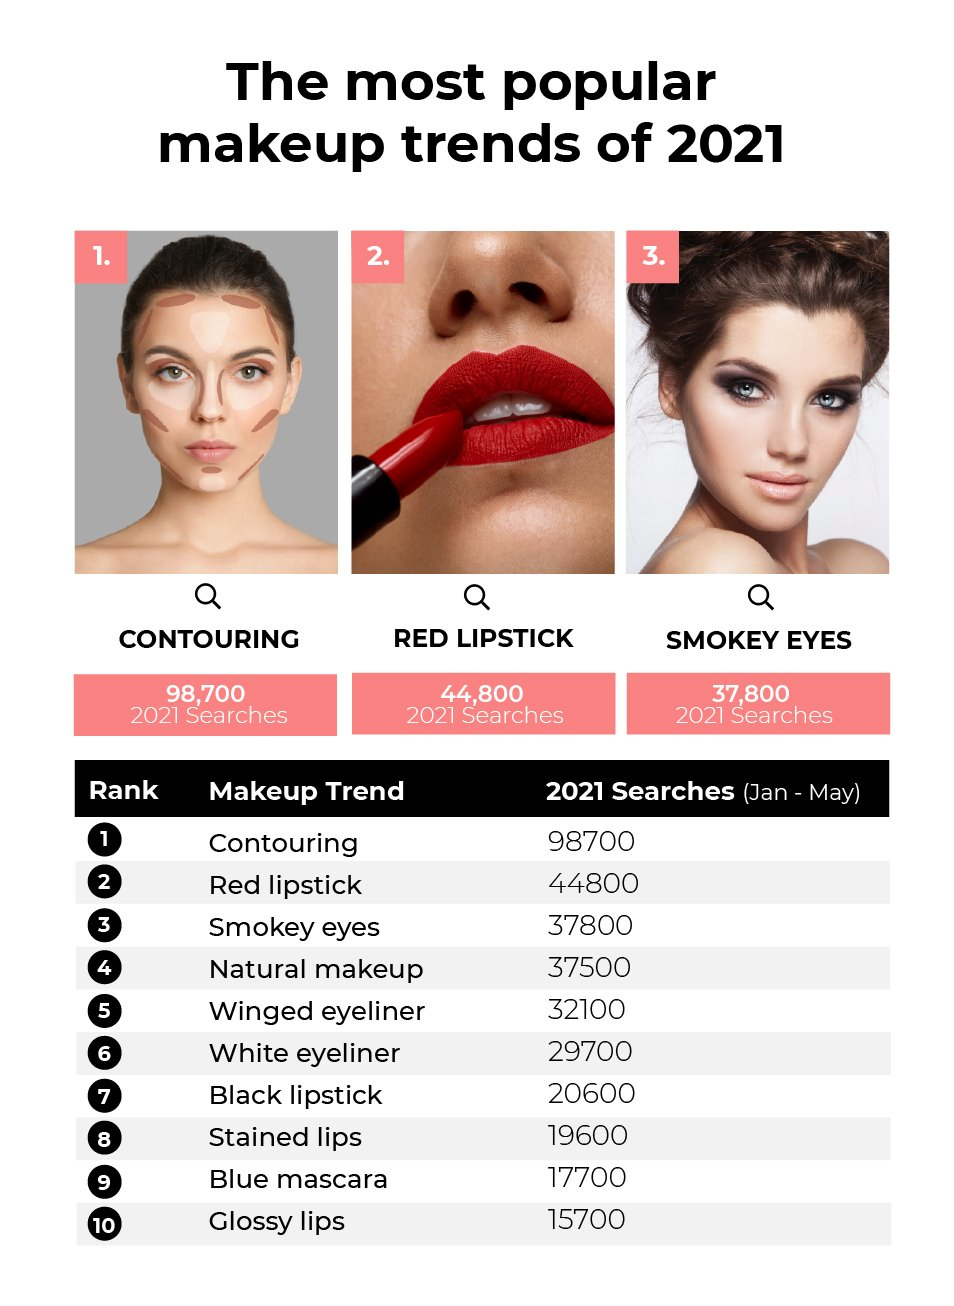 The most popular makeup trends of 2021: Contouring (98,700 searches), Red Lipstick (44,800 searches) and Smokey Eyes (37,800 searches)